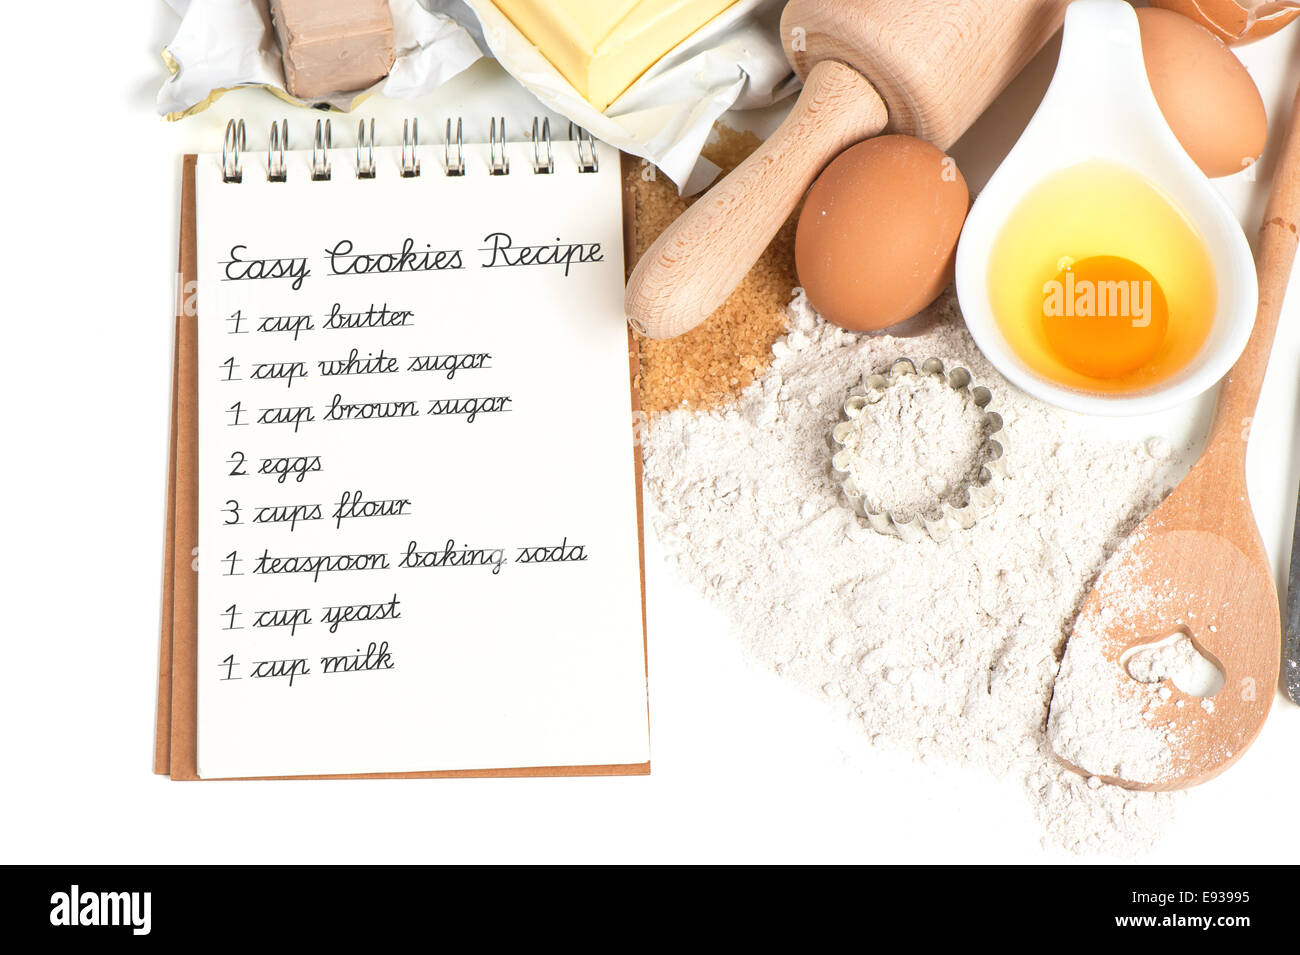 Recipe book and baking ingredients eggs flour sugar butter yeast recipe book and baking ingredients eggs flour sugar butter yeast food background sample text easy cookies recipe forumfinder Images